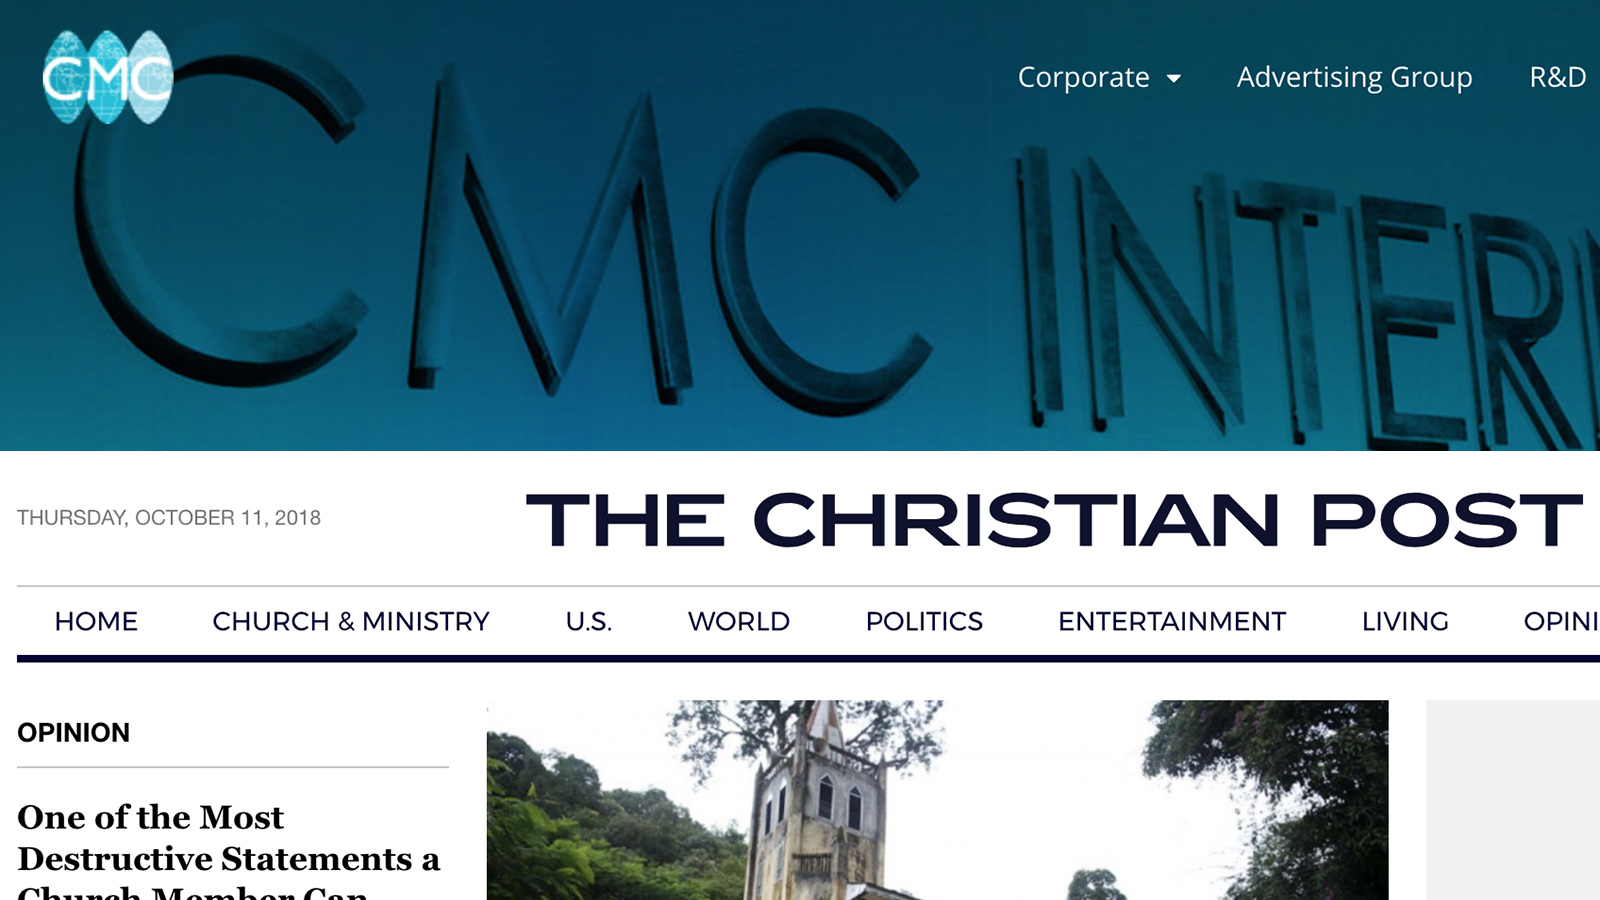 Homepage of Christian Media Corp., the parent firm of The Christian Post. Screenshot